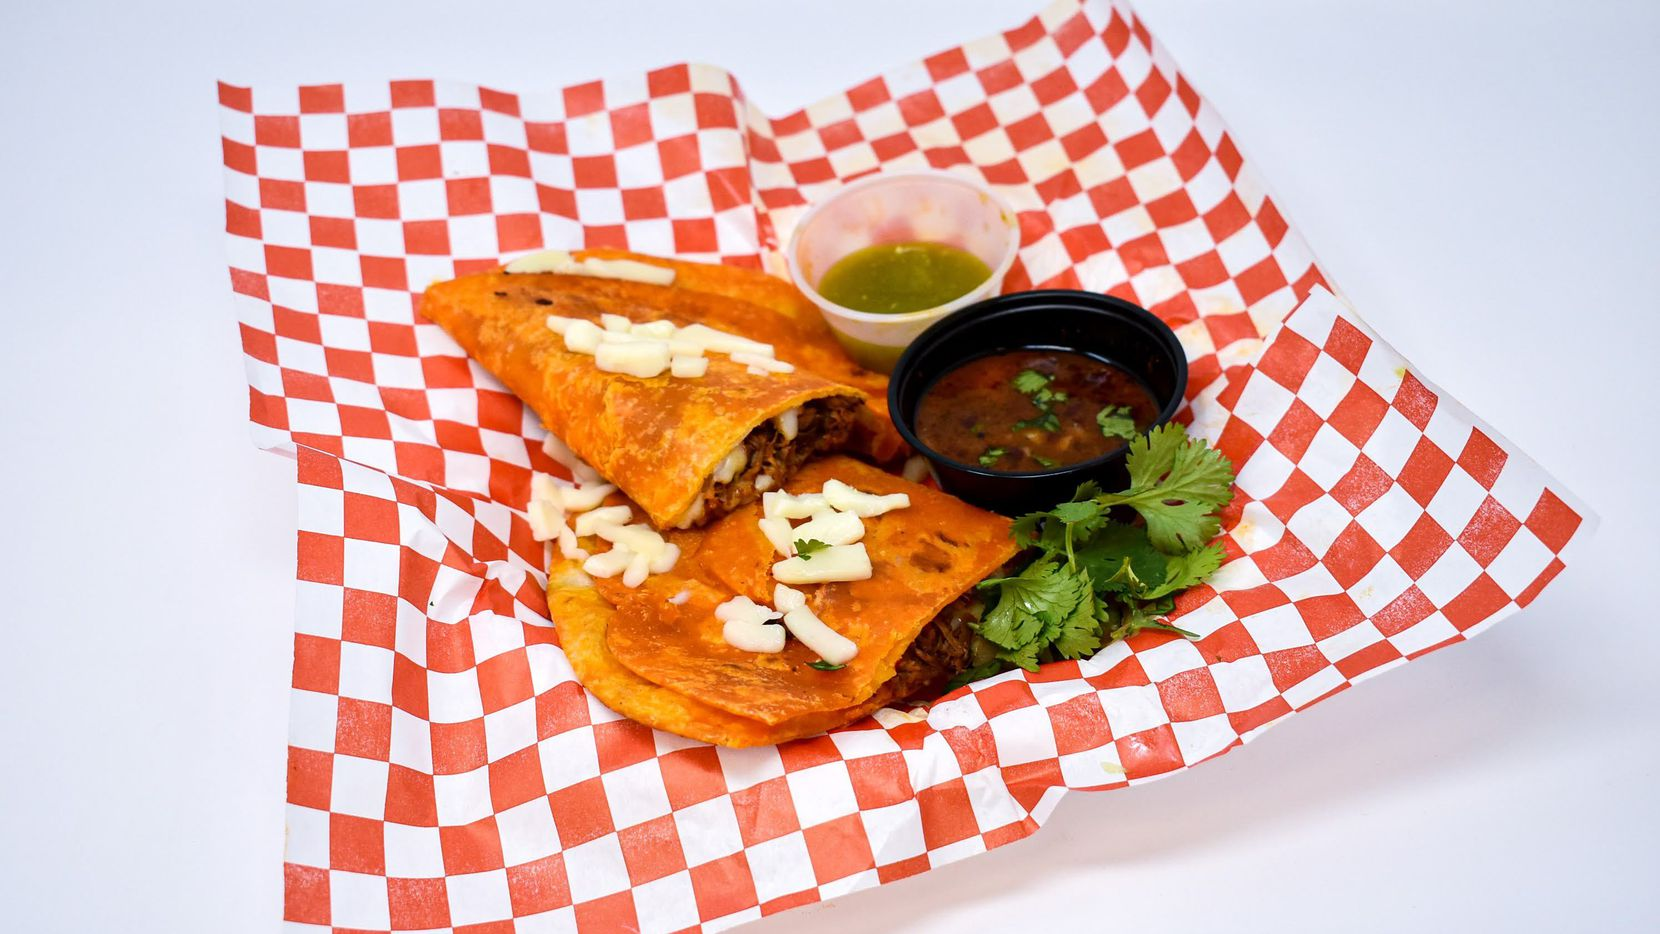 Quesabirria is one of the new menu item at the State Fair of Texas in 2021. Take our quiz to find out which State Fair food is best for you.